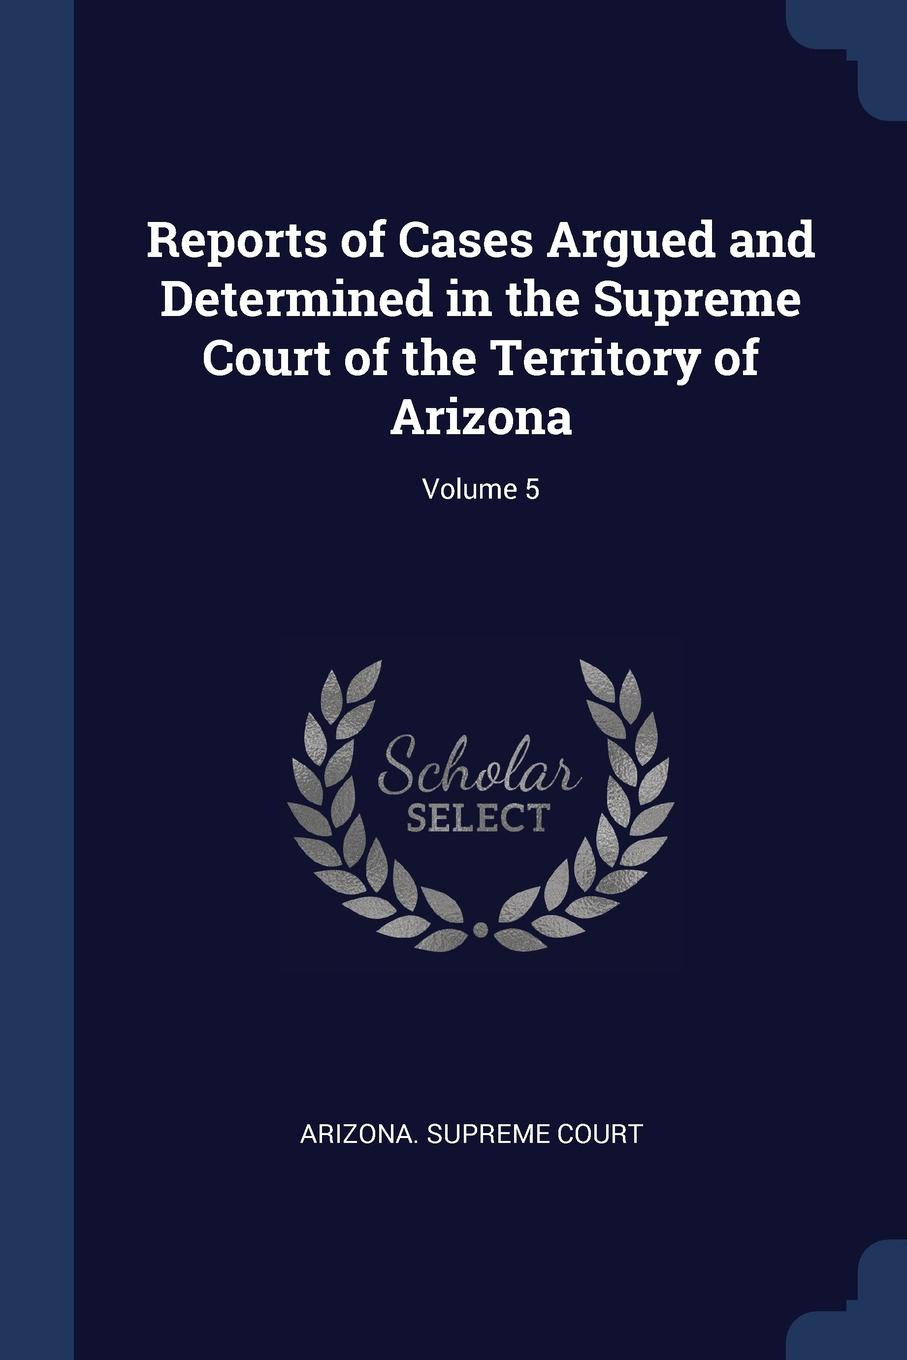 Reports of Cases Argued and Determined in the Supreme Court Territory Arizona; Volume 5